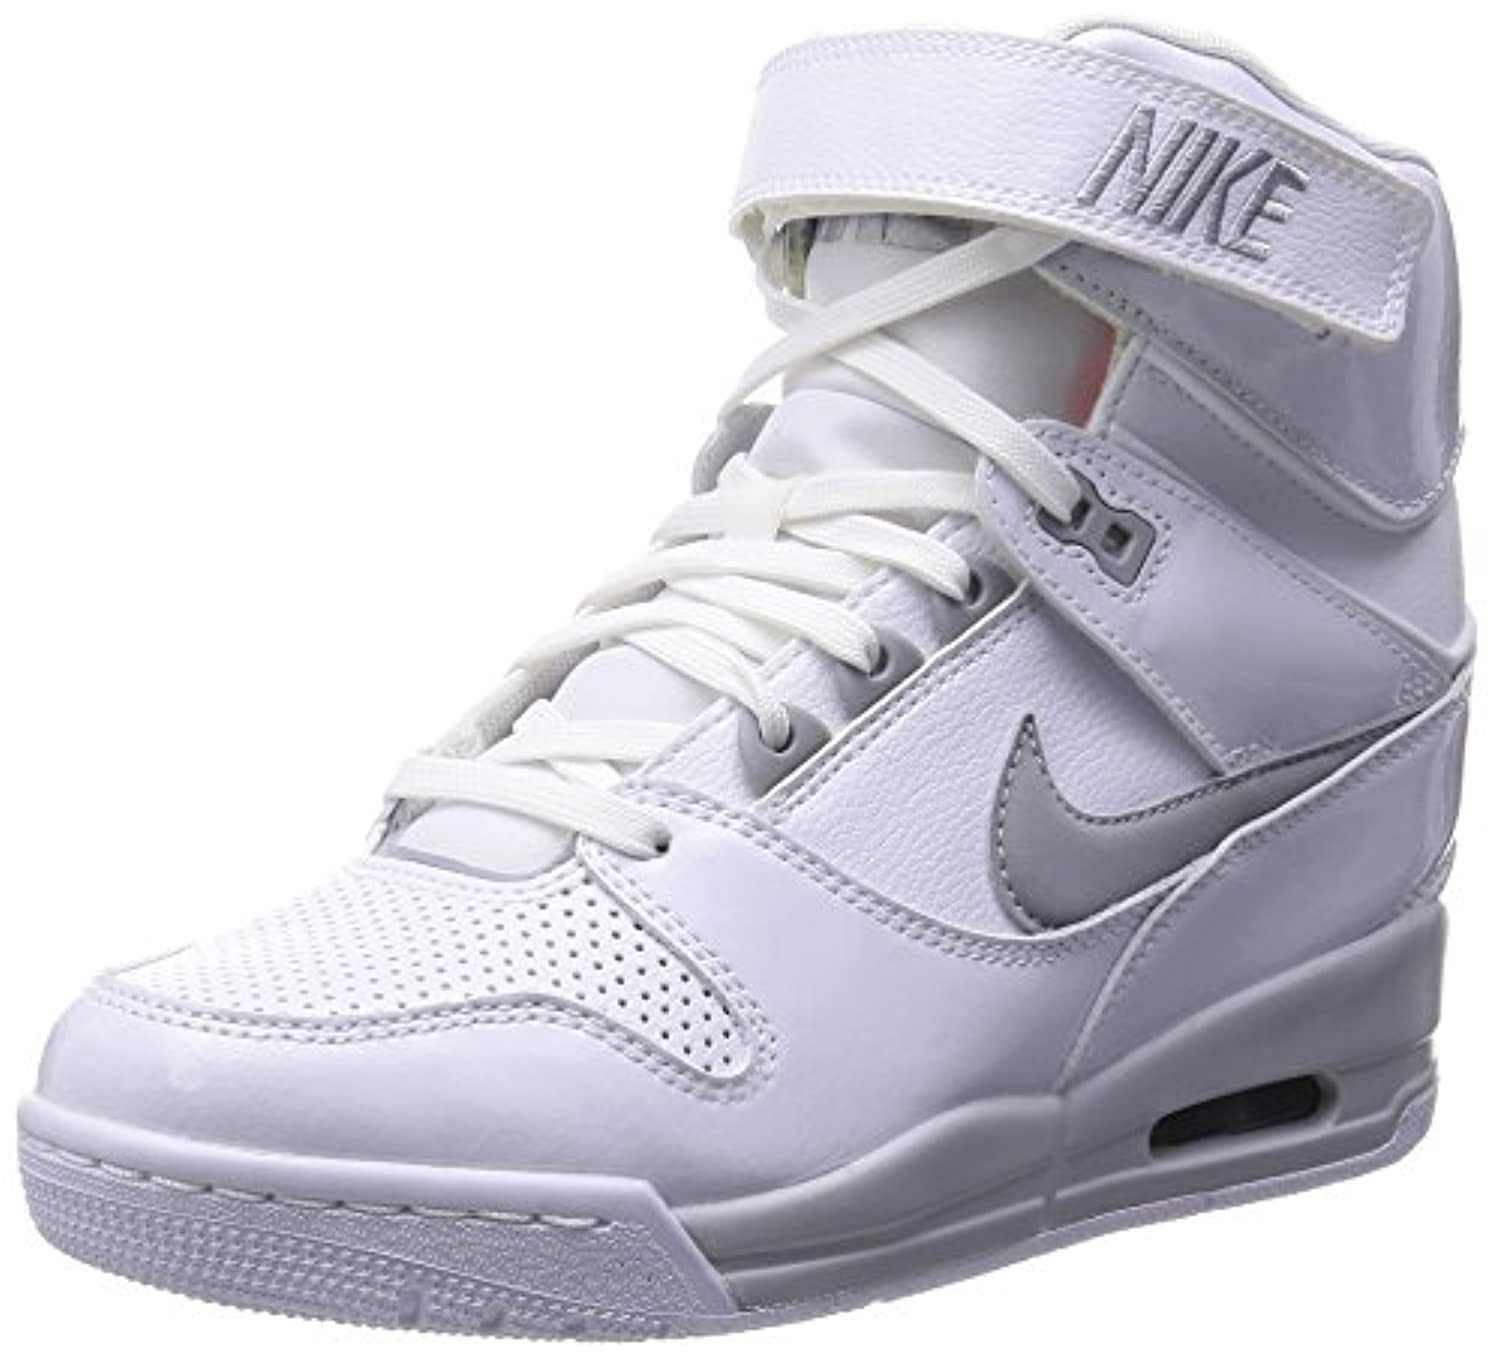 Nike Air Revolution Sky Hi Women's Shoes Wedge White/Hyper Punch/Metallic Silver/Wolf Grey 599410-102 (SIZE: 7.5)